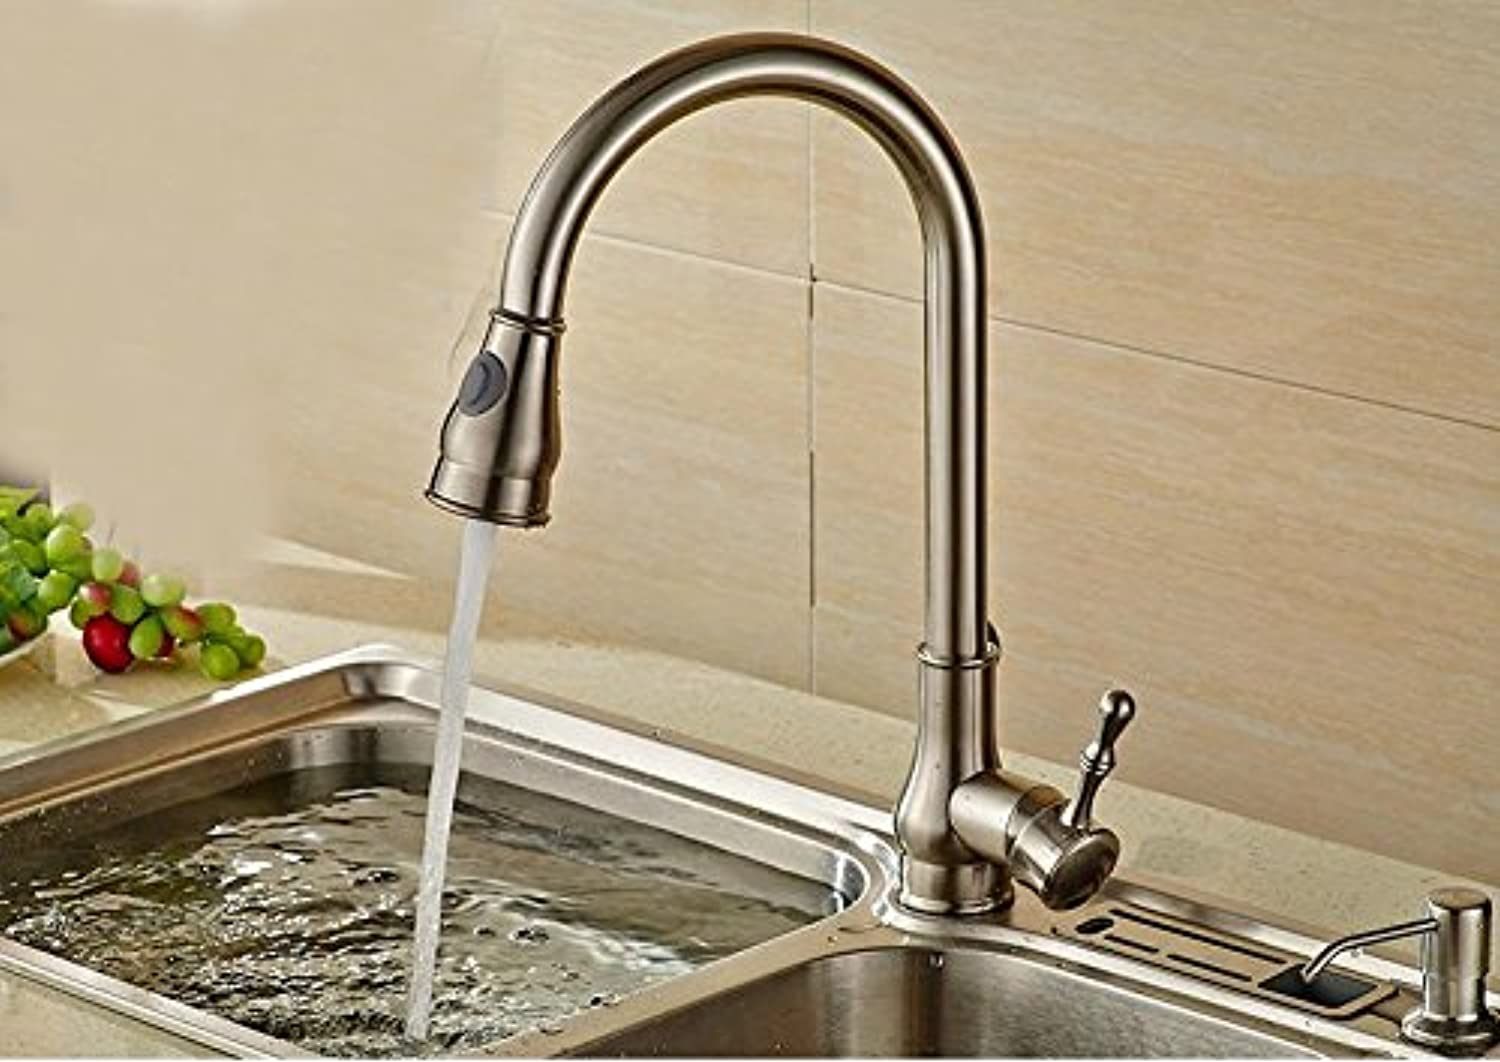 PLYY Full copper drawing pull faucet, kitchen faucet, hot and cold water tank wash basin turn the faucet